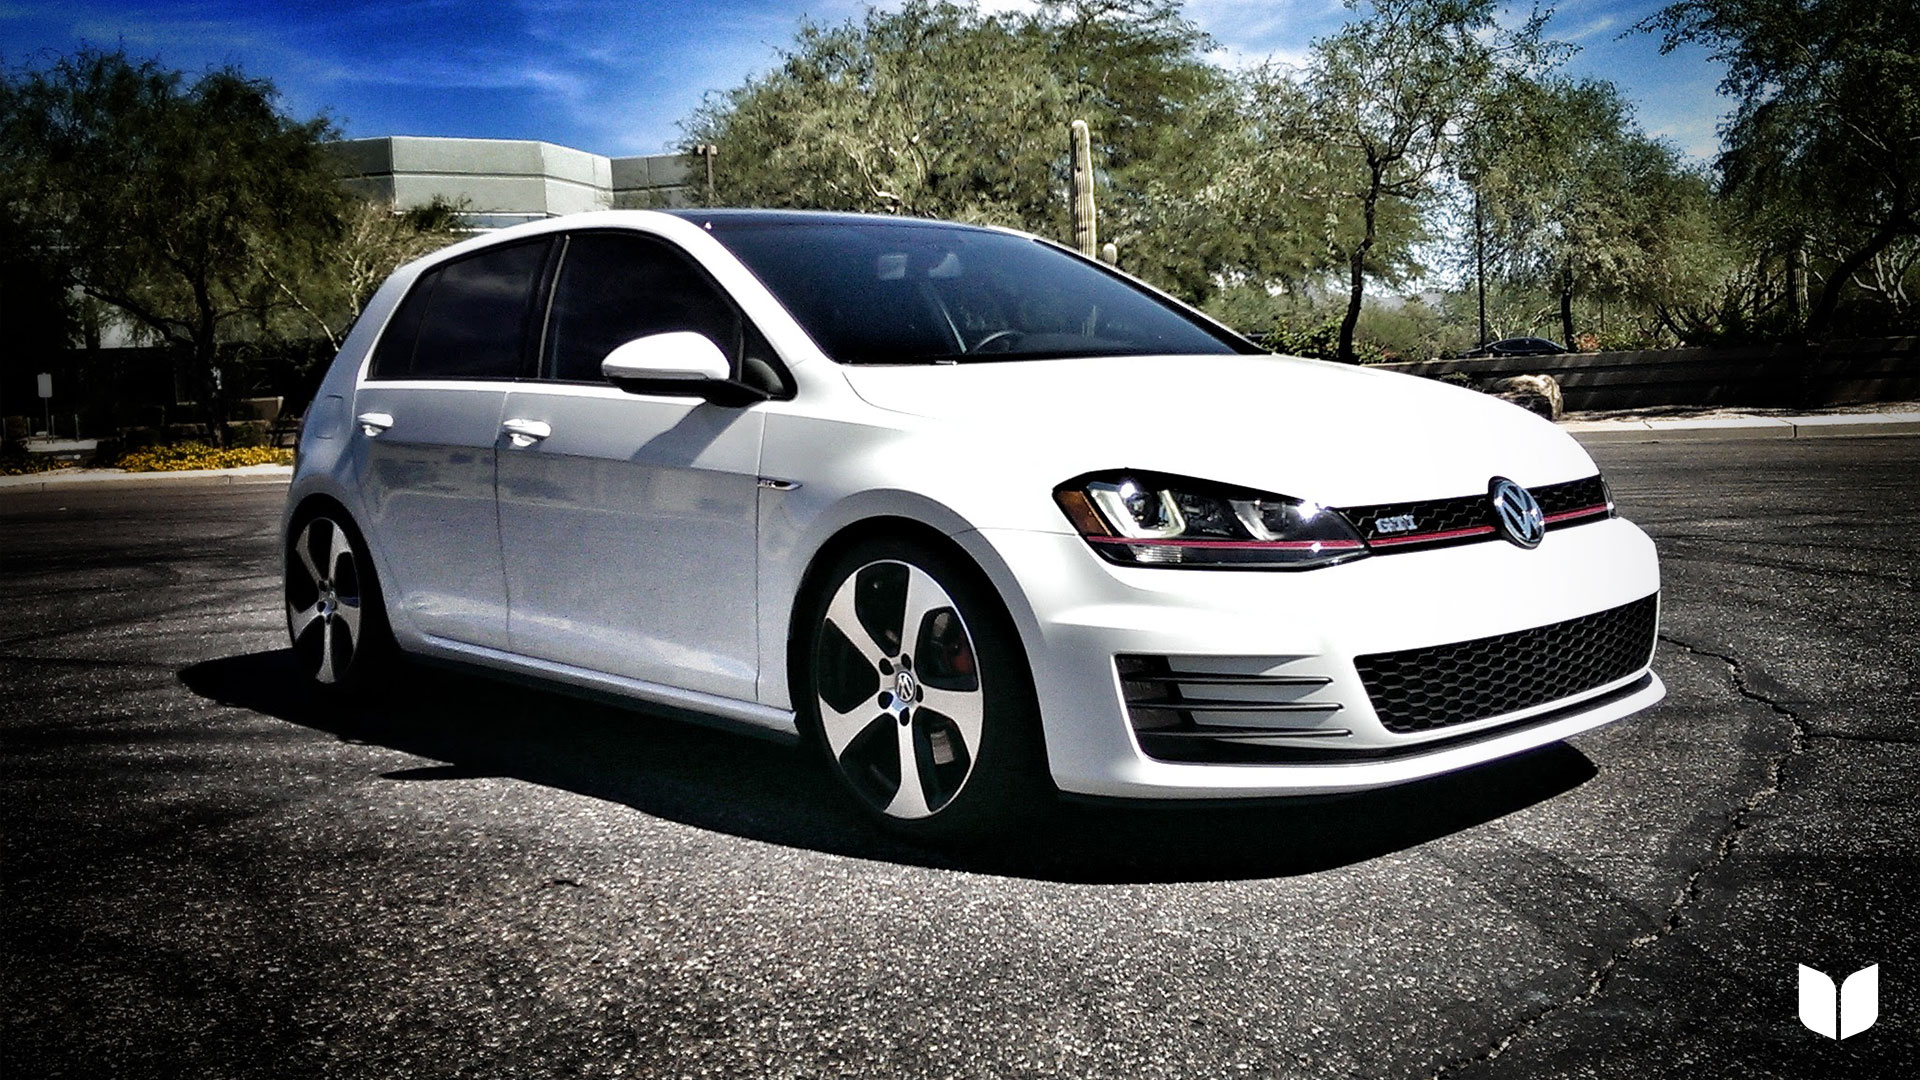 2015 Volkswagen MK7 GTI H&R Springs ECS Spacers Parts Score Scottsdale